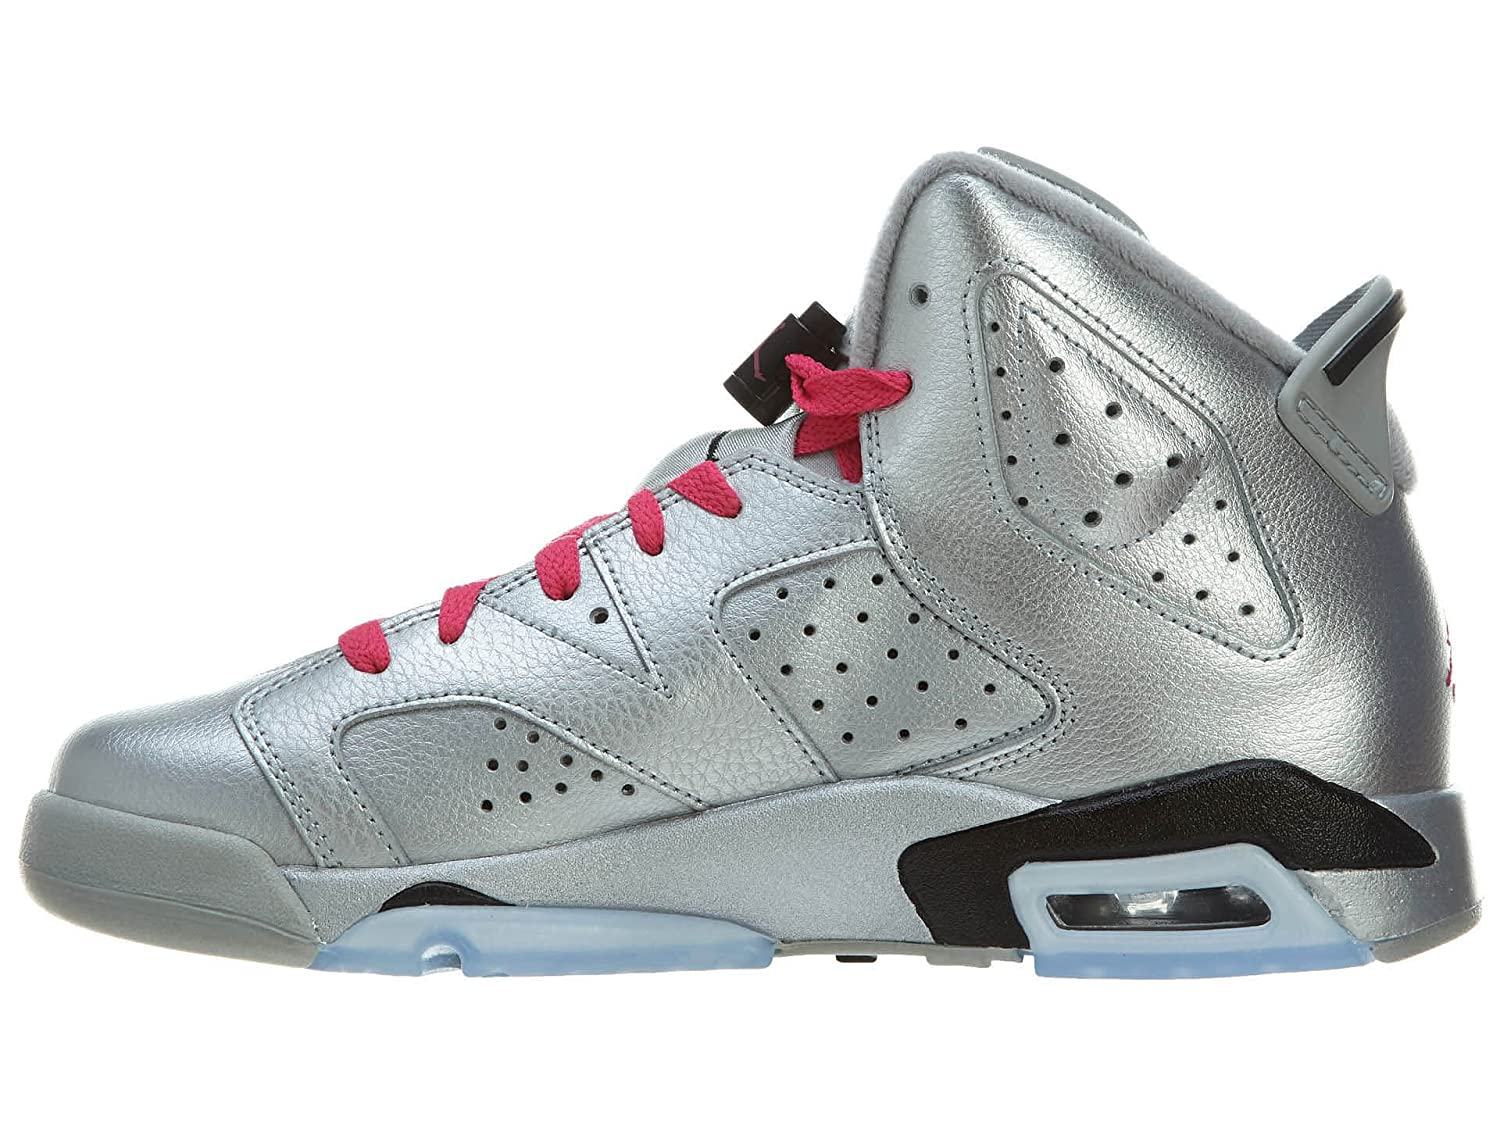 b62297581fbb5 Amazon.com: Nike Air Jordan Retro 6 OG Basketball Girl Shoes  Silver/Black/Pink 543390-009 (SIZE: 4Y) : Shoes